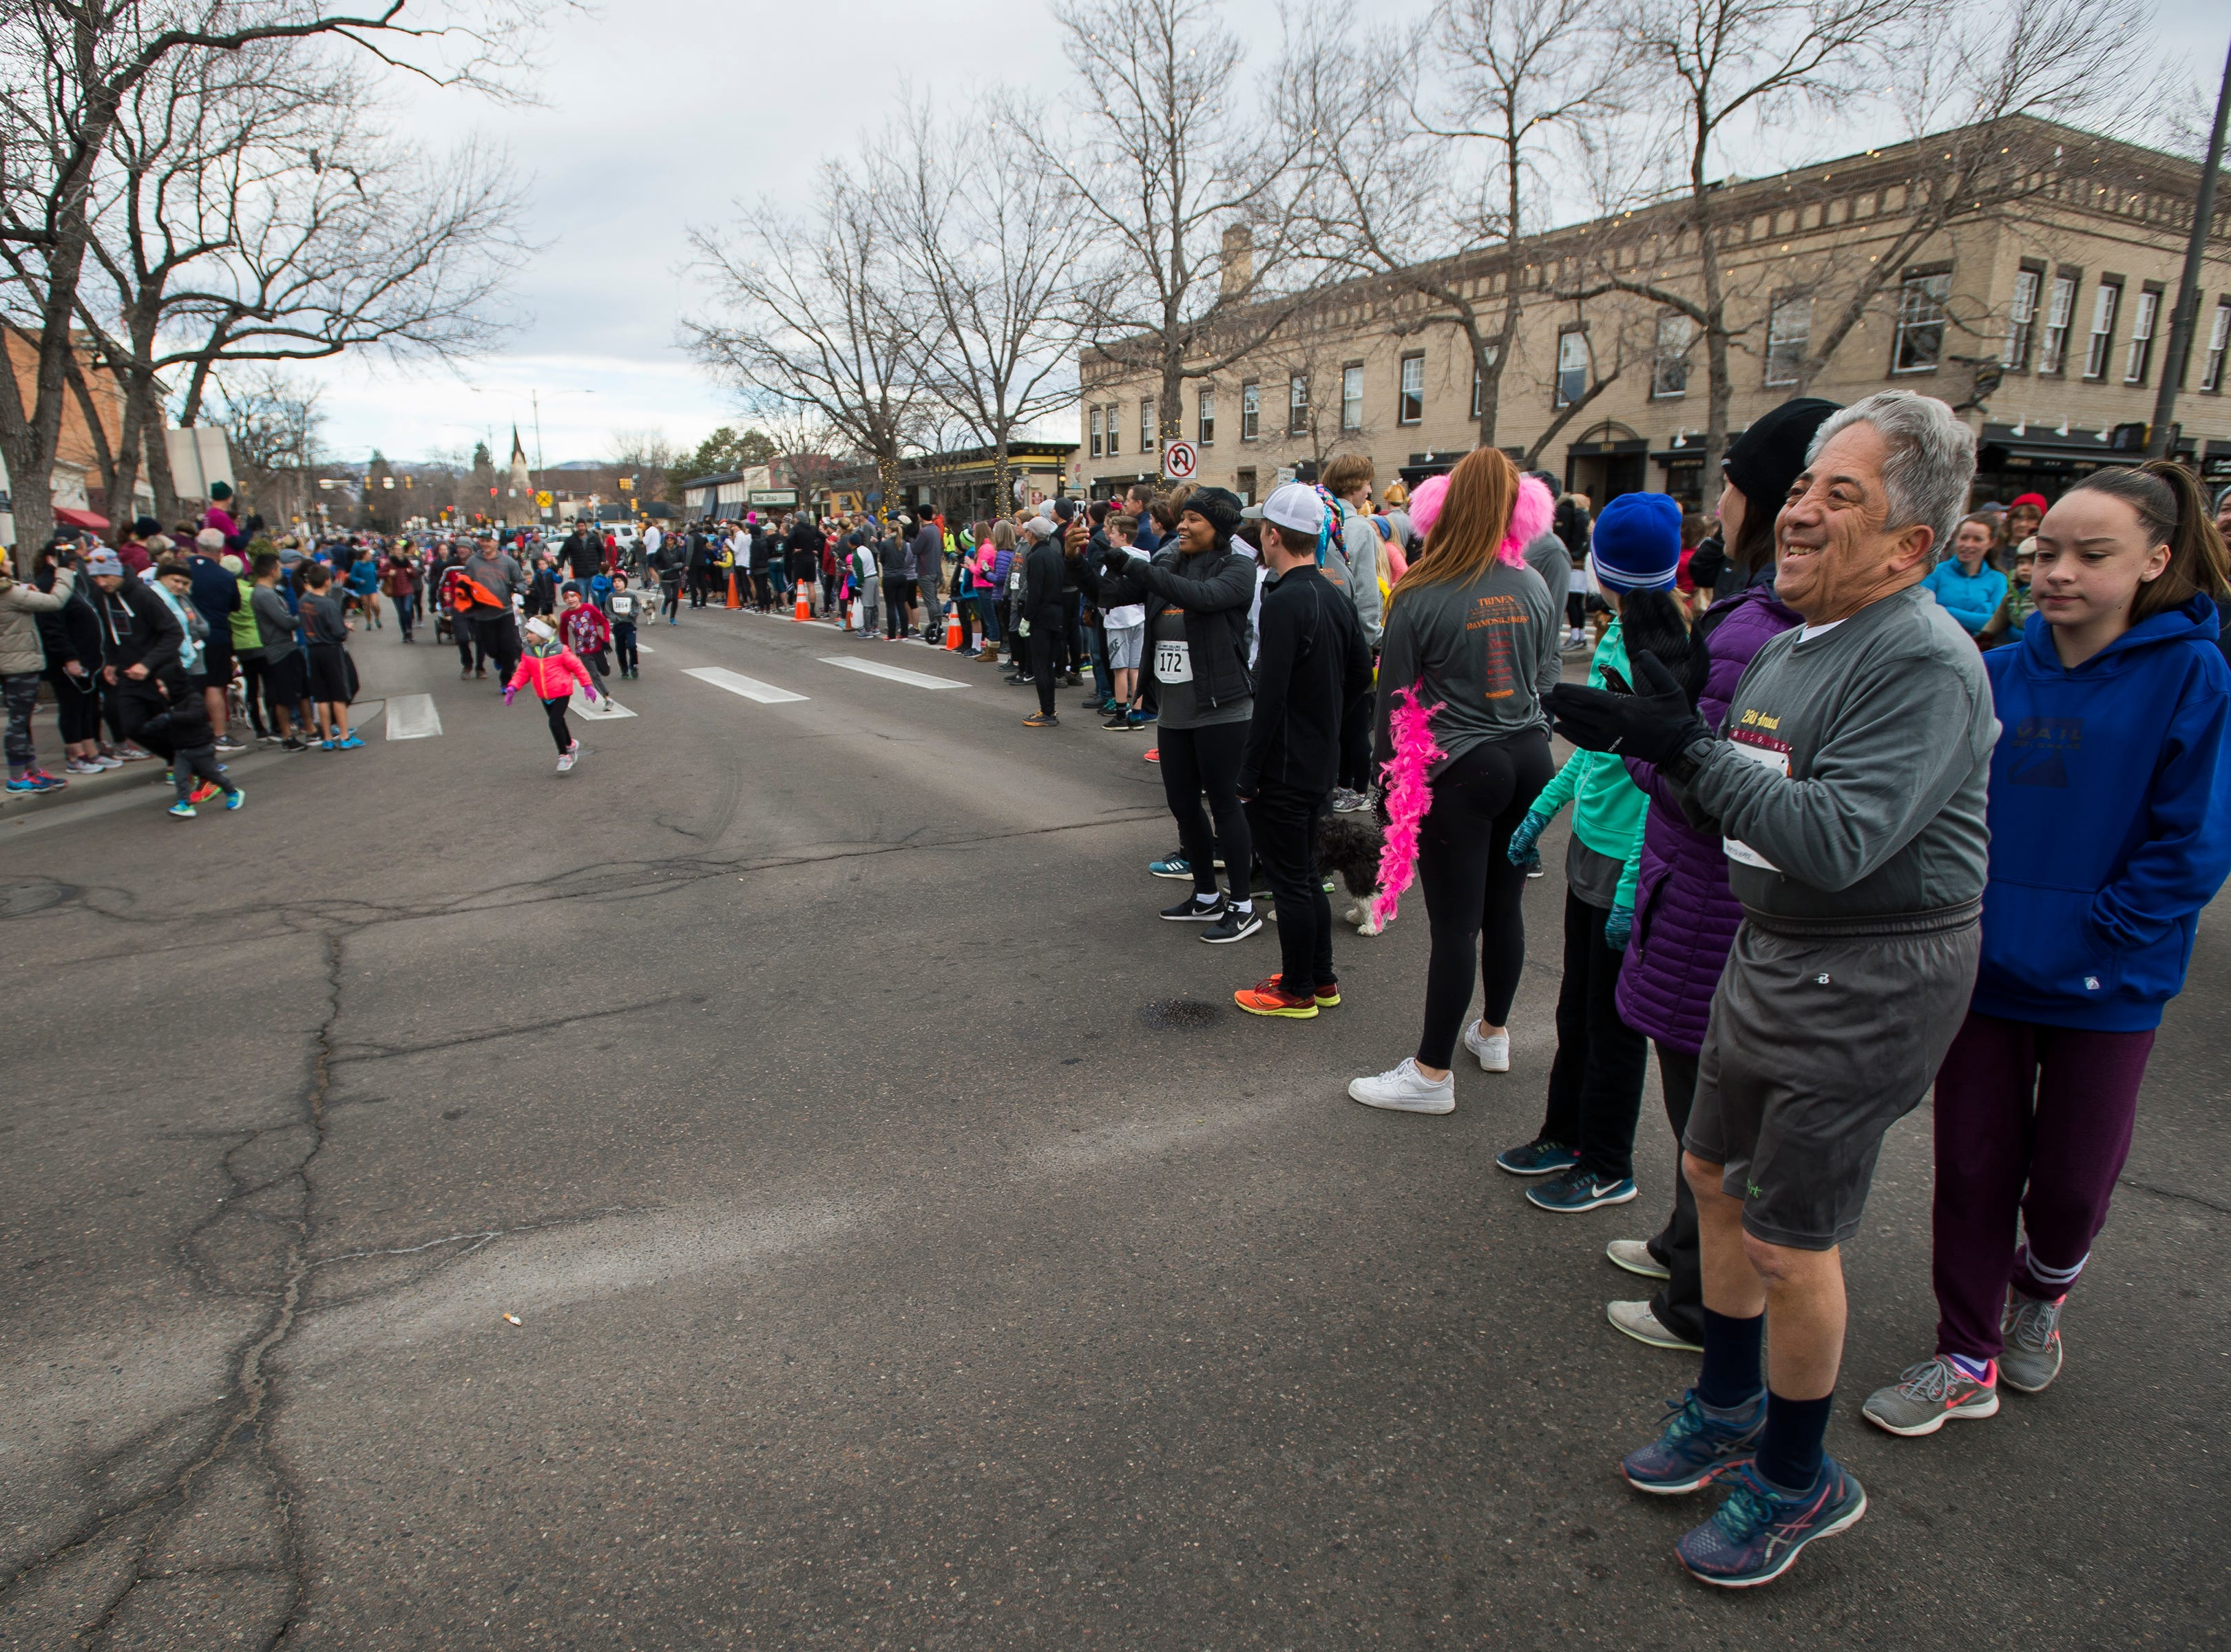 State Sen. John Kefalas, right, cheers on young runners participating in the kid's run during the Fort Collins Thanksgiving Day Run on Thursday, Nov. 22, 2018, in Old Town Fort Collins, Colo.